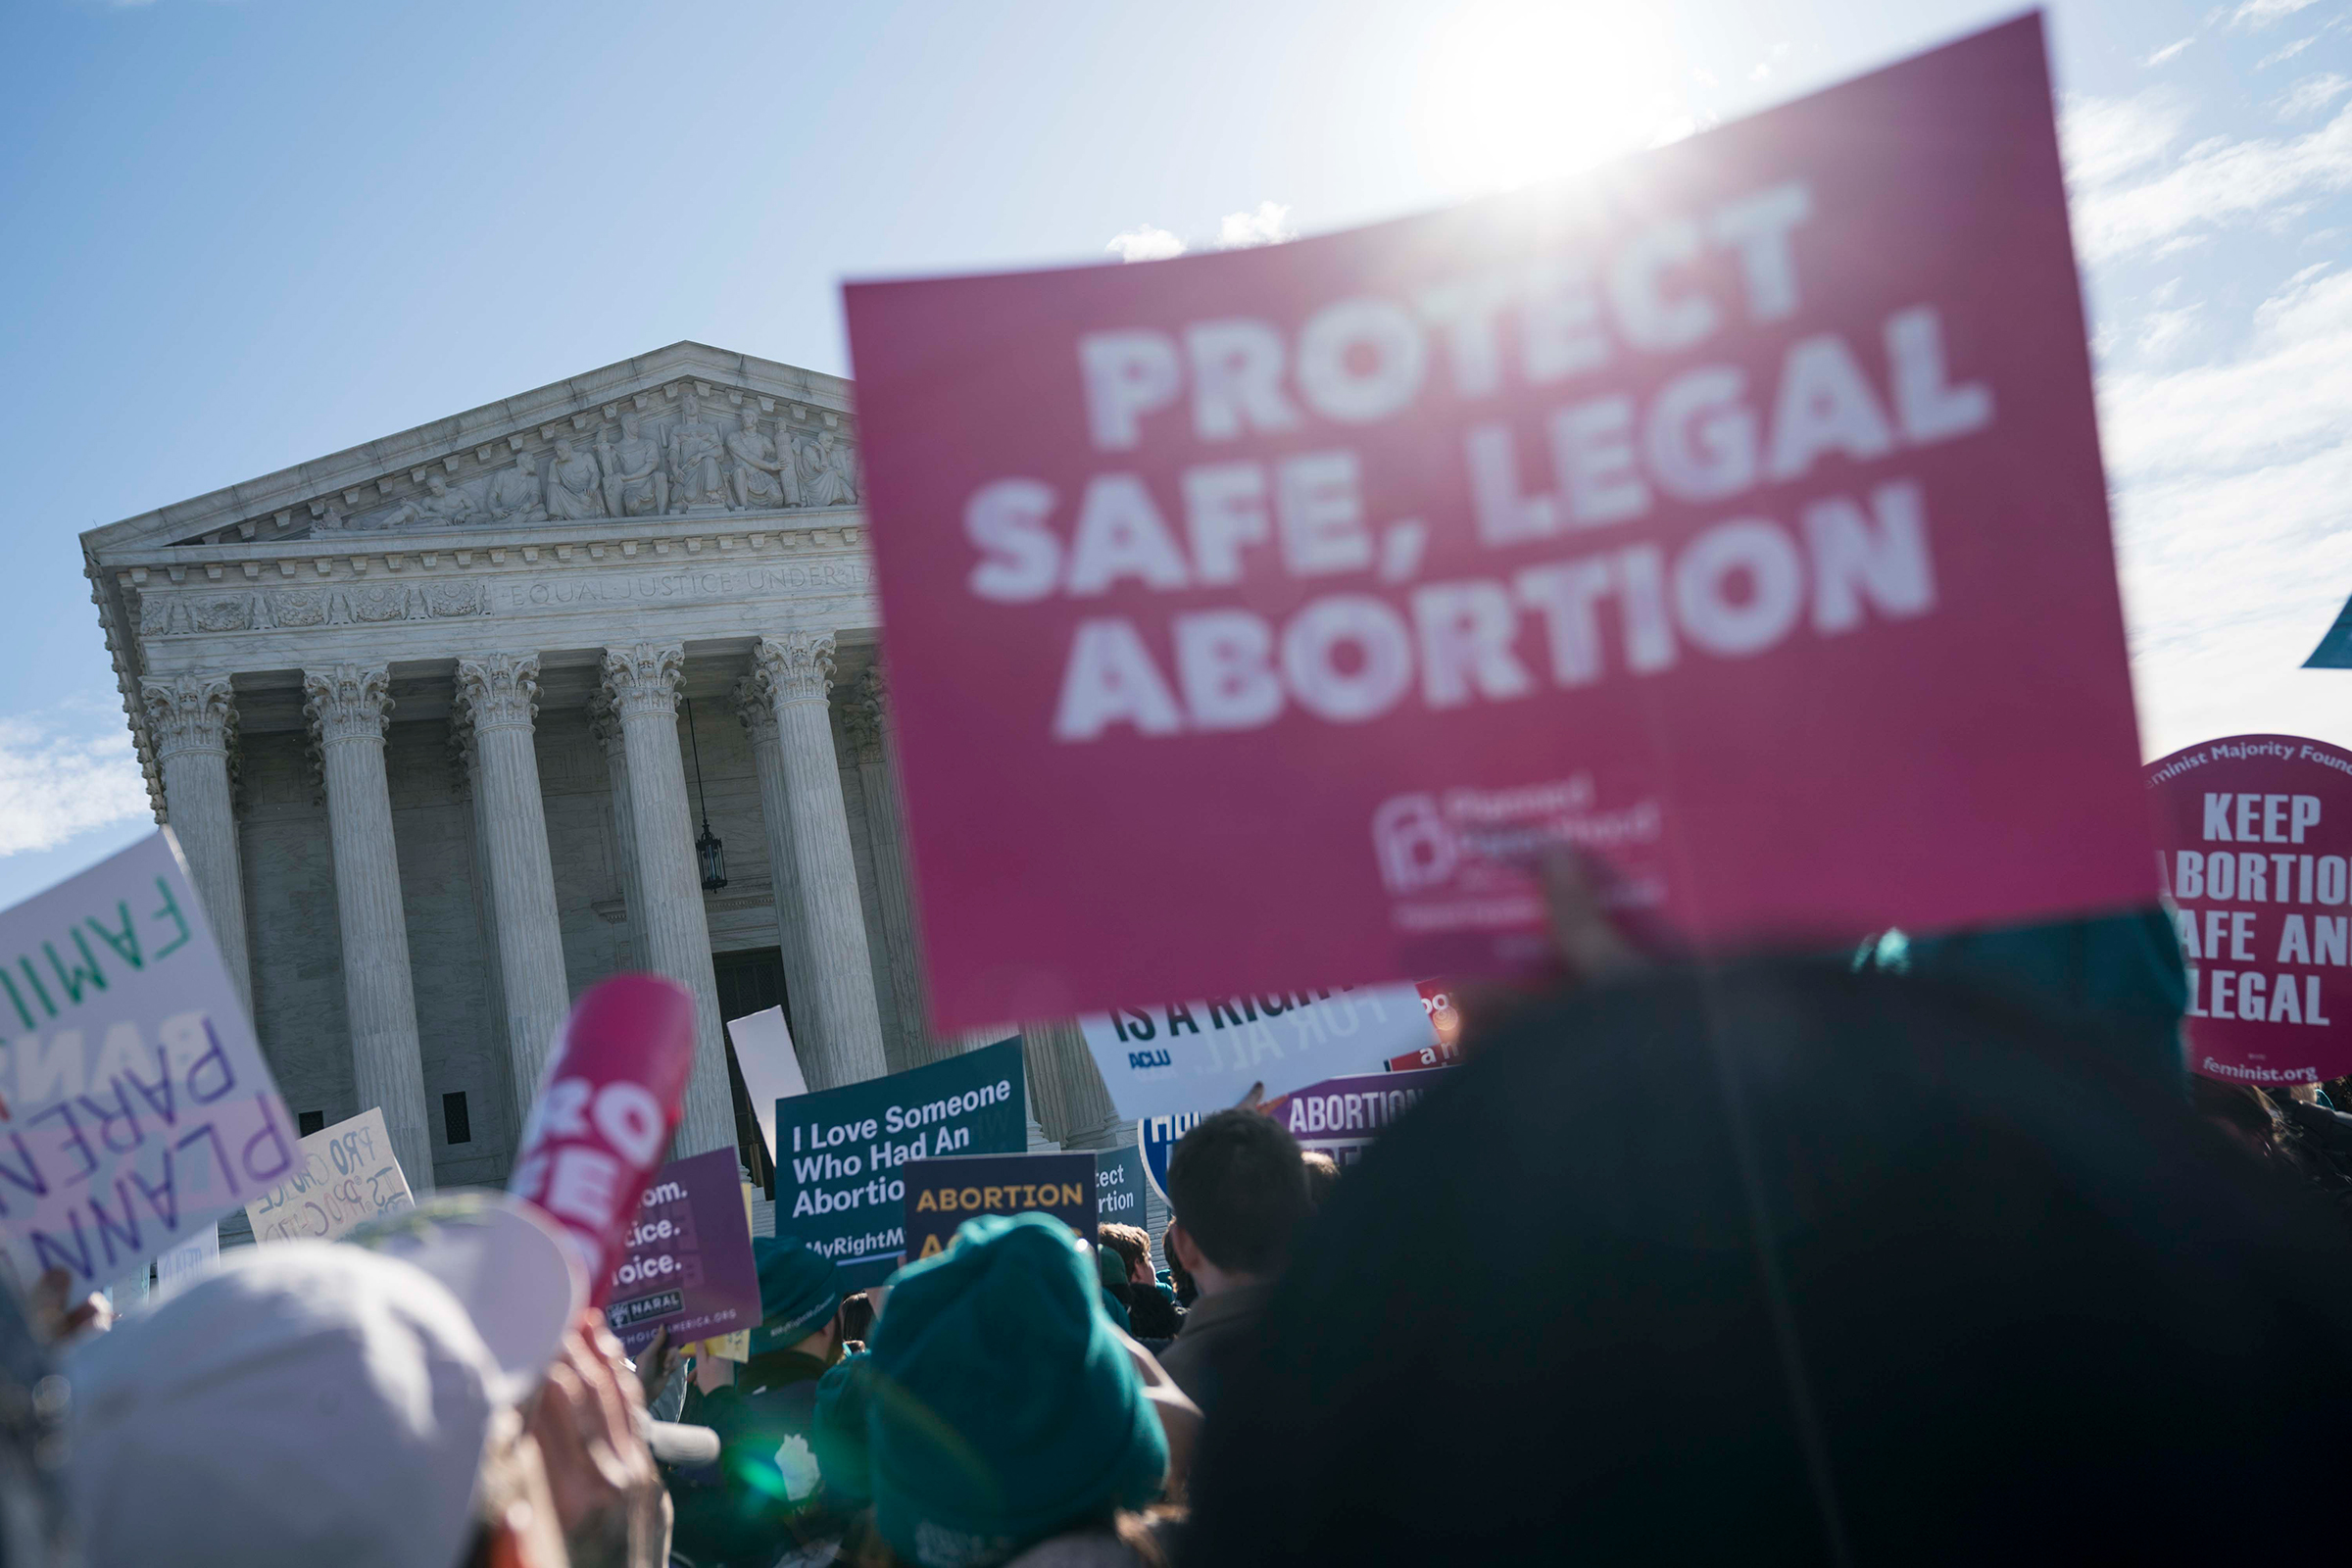 People participate in an abortion rights rally outside of the Supreme Court on March 4